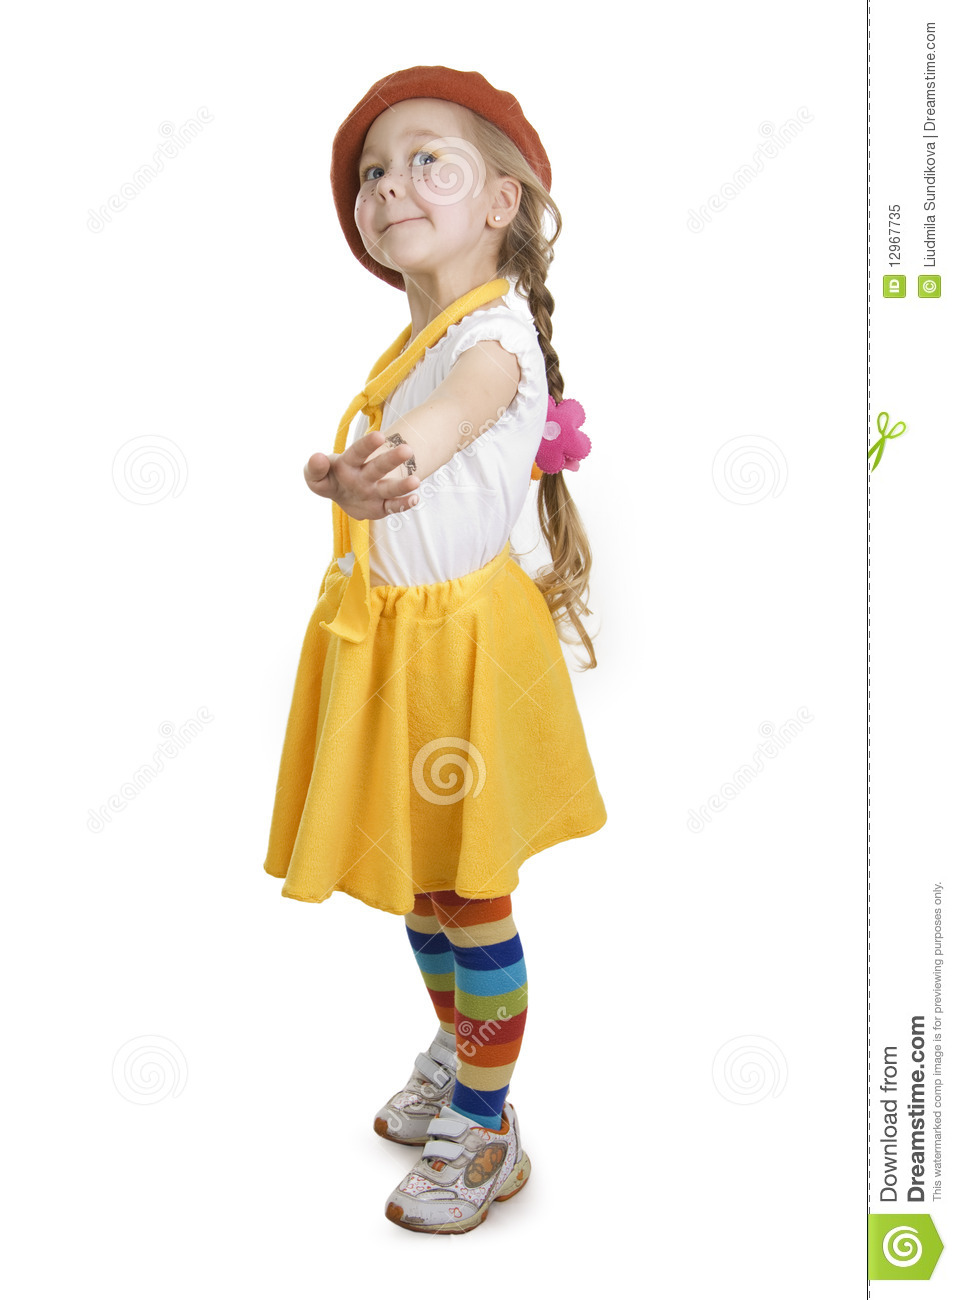 fashionable little girl royalty free stock photo image